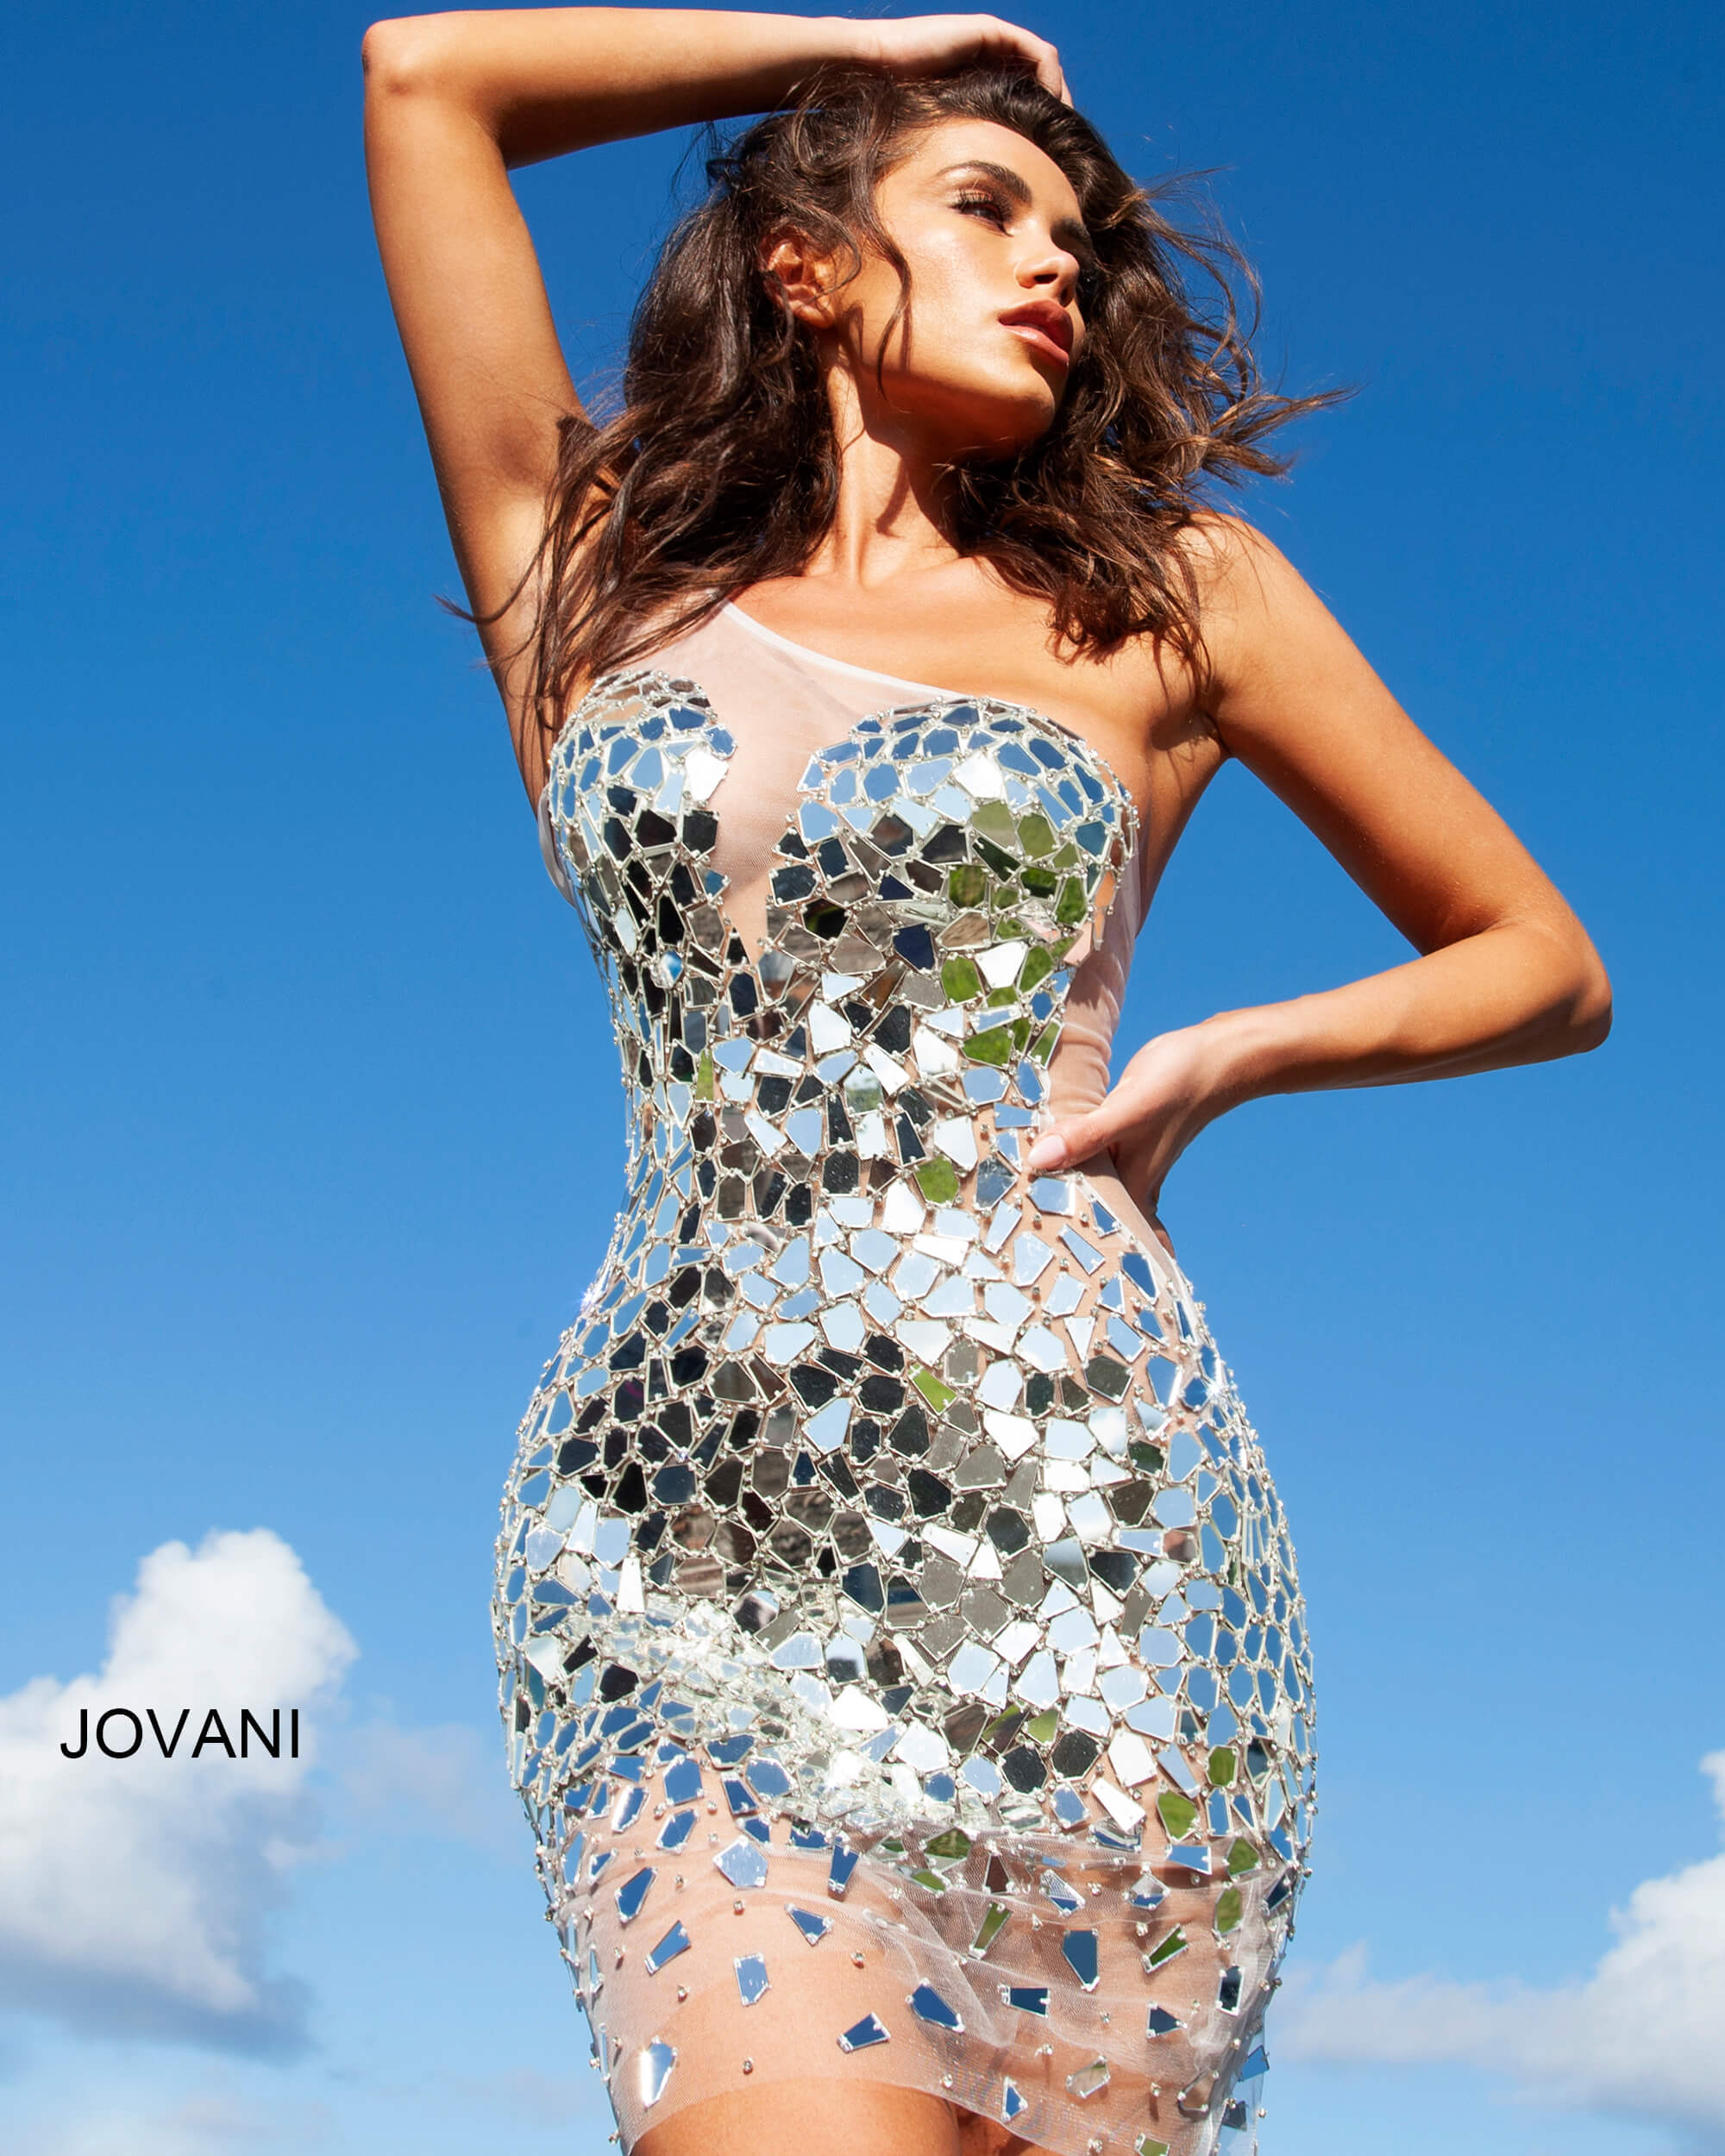 jovani Jovani 04888 One Shoulder Embellished Cocktail Dress